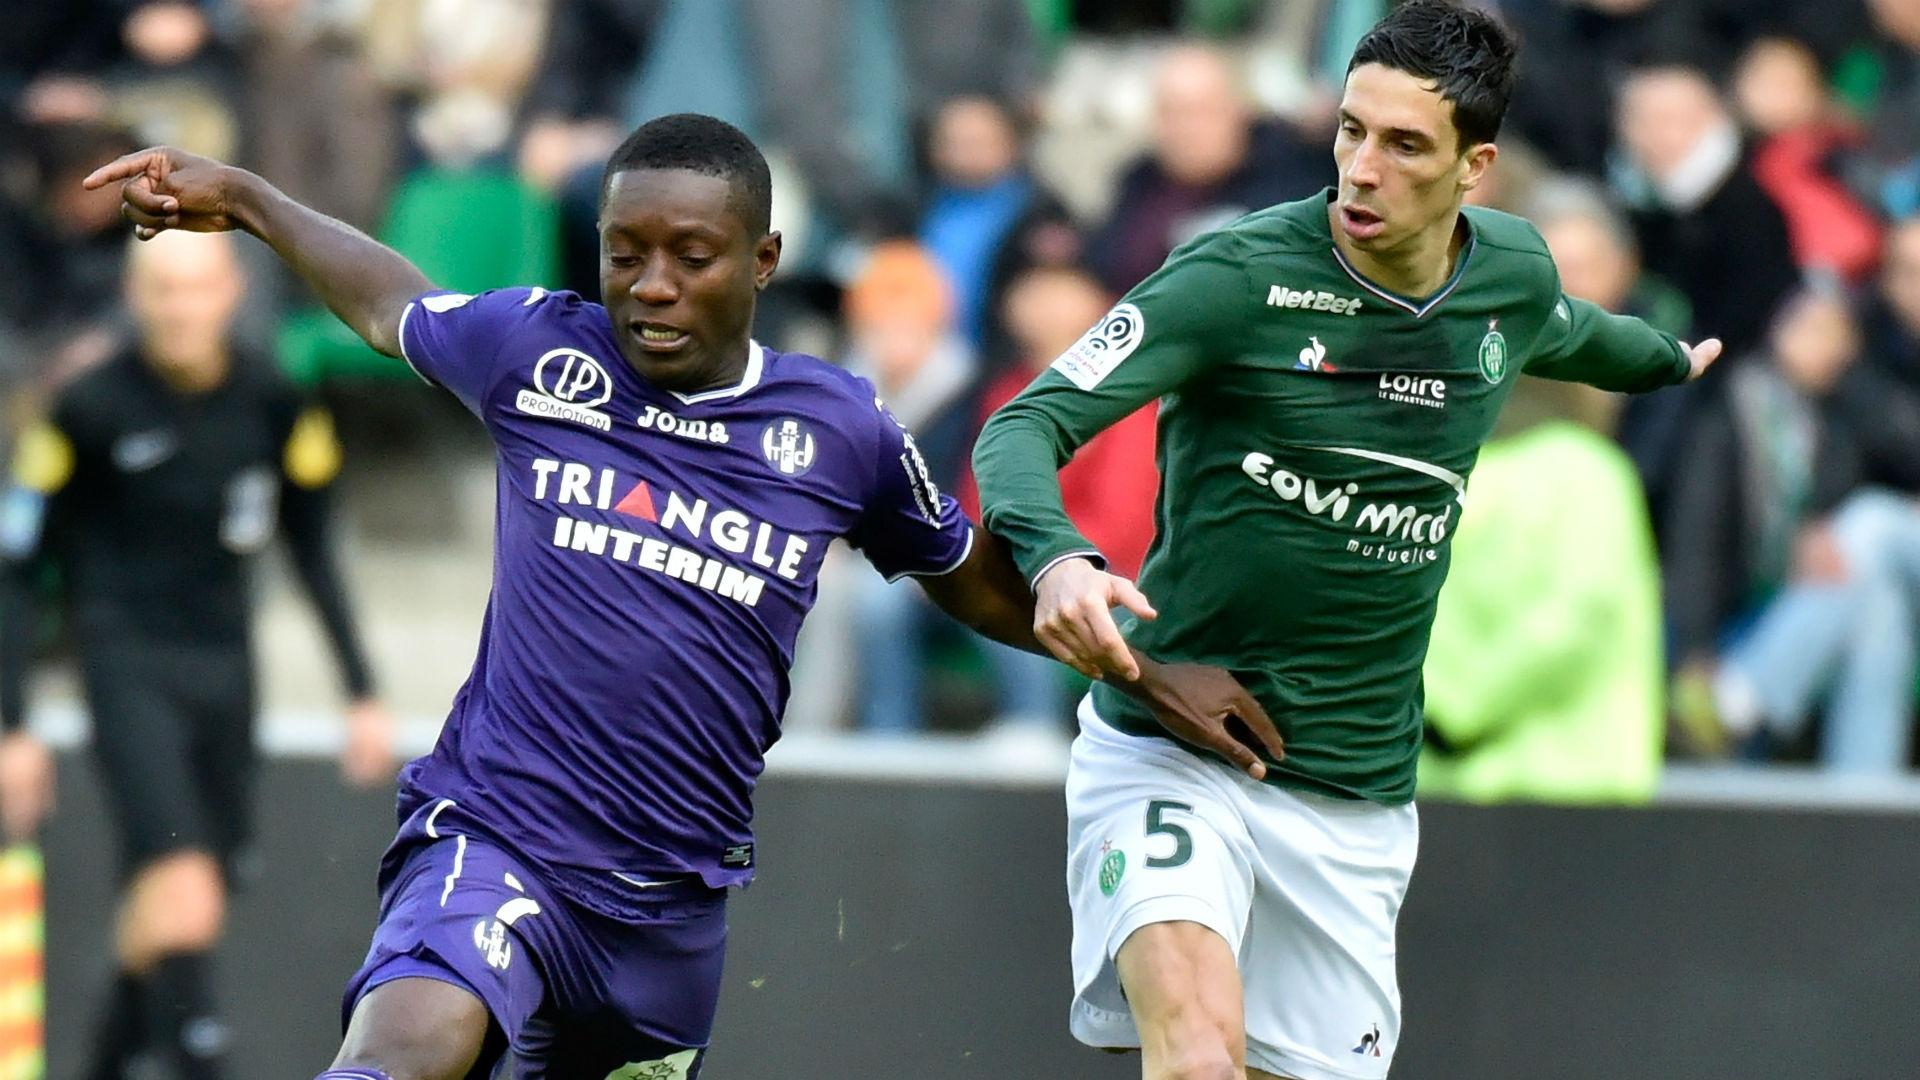 Saint-Etienne, Rennes show interests in Bournemouth's Max Gradel ...